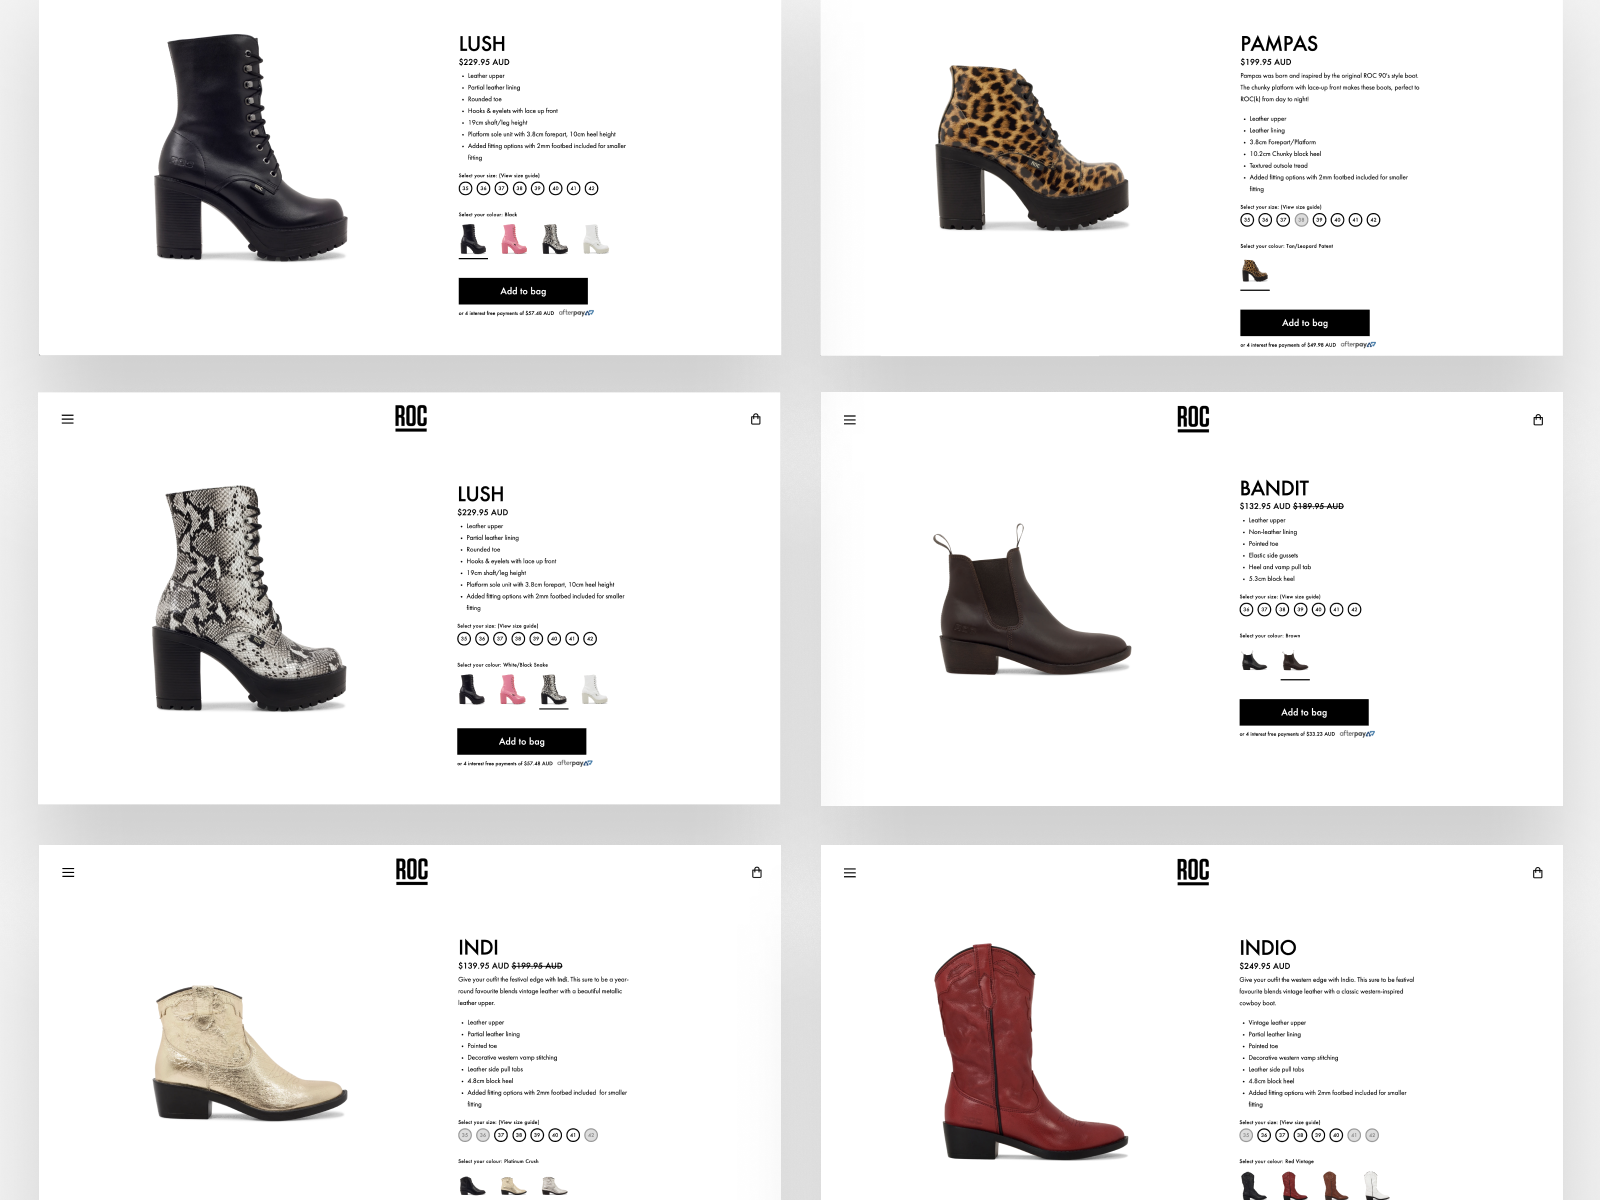 Roc Boots Shopify Design Development By Adam Tregear For Flux Agency On Dribbble